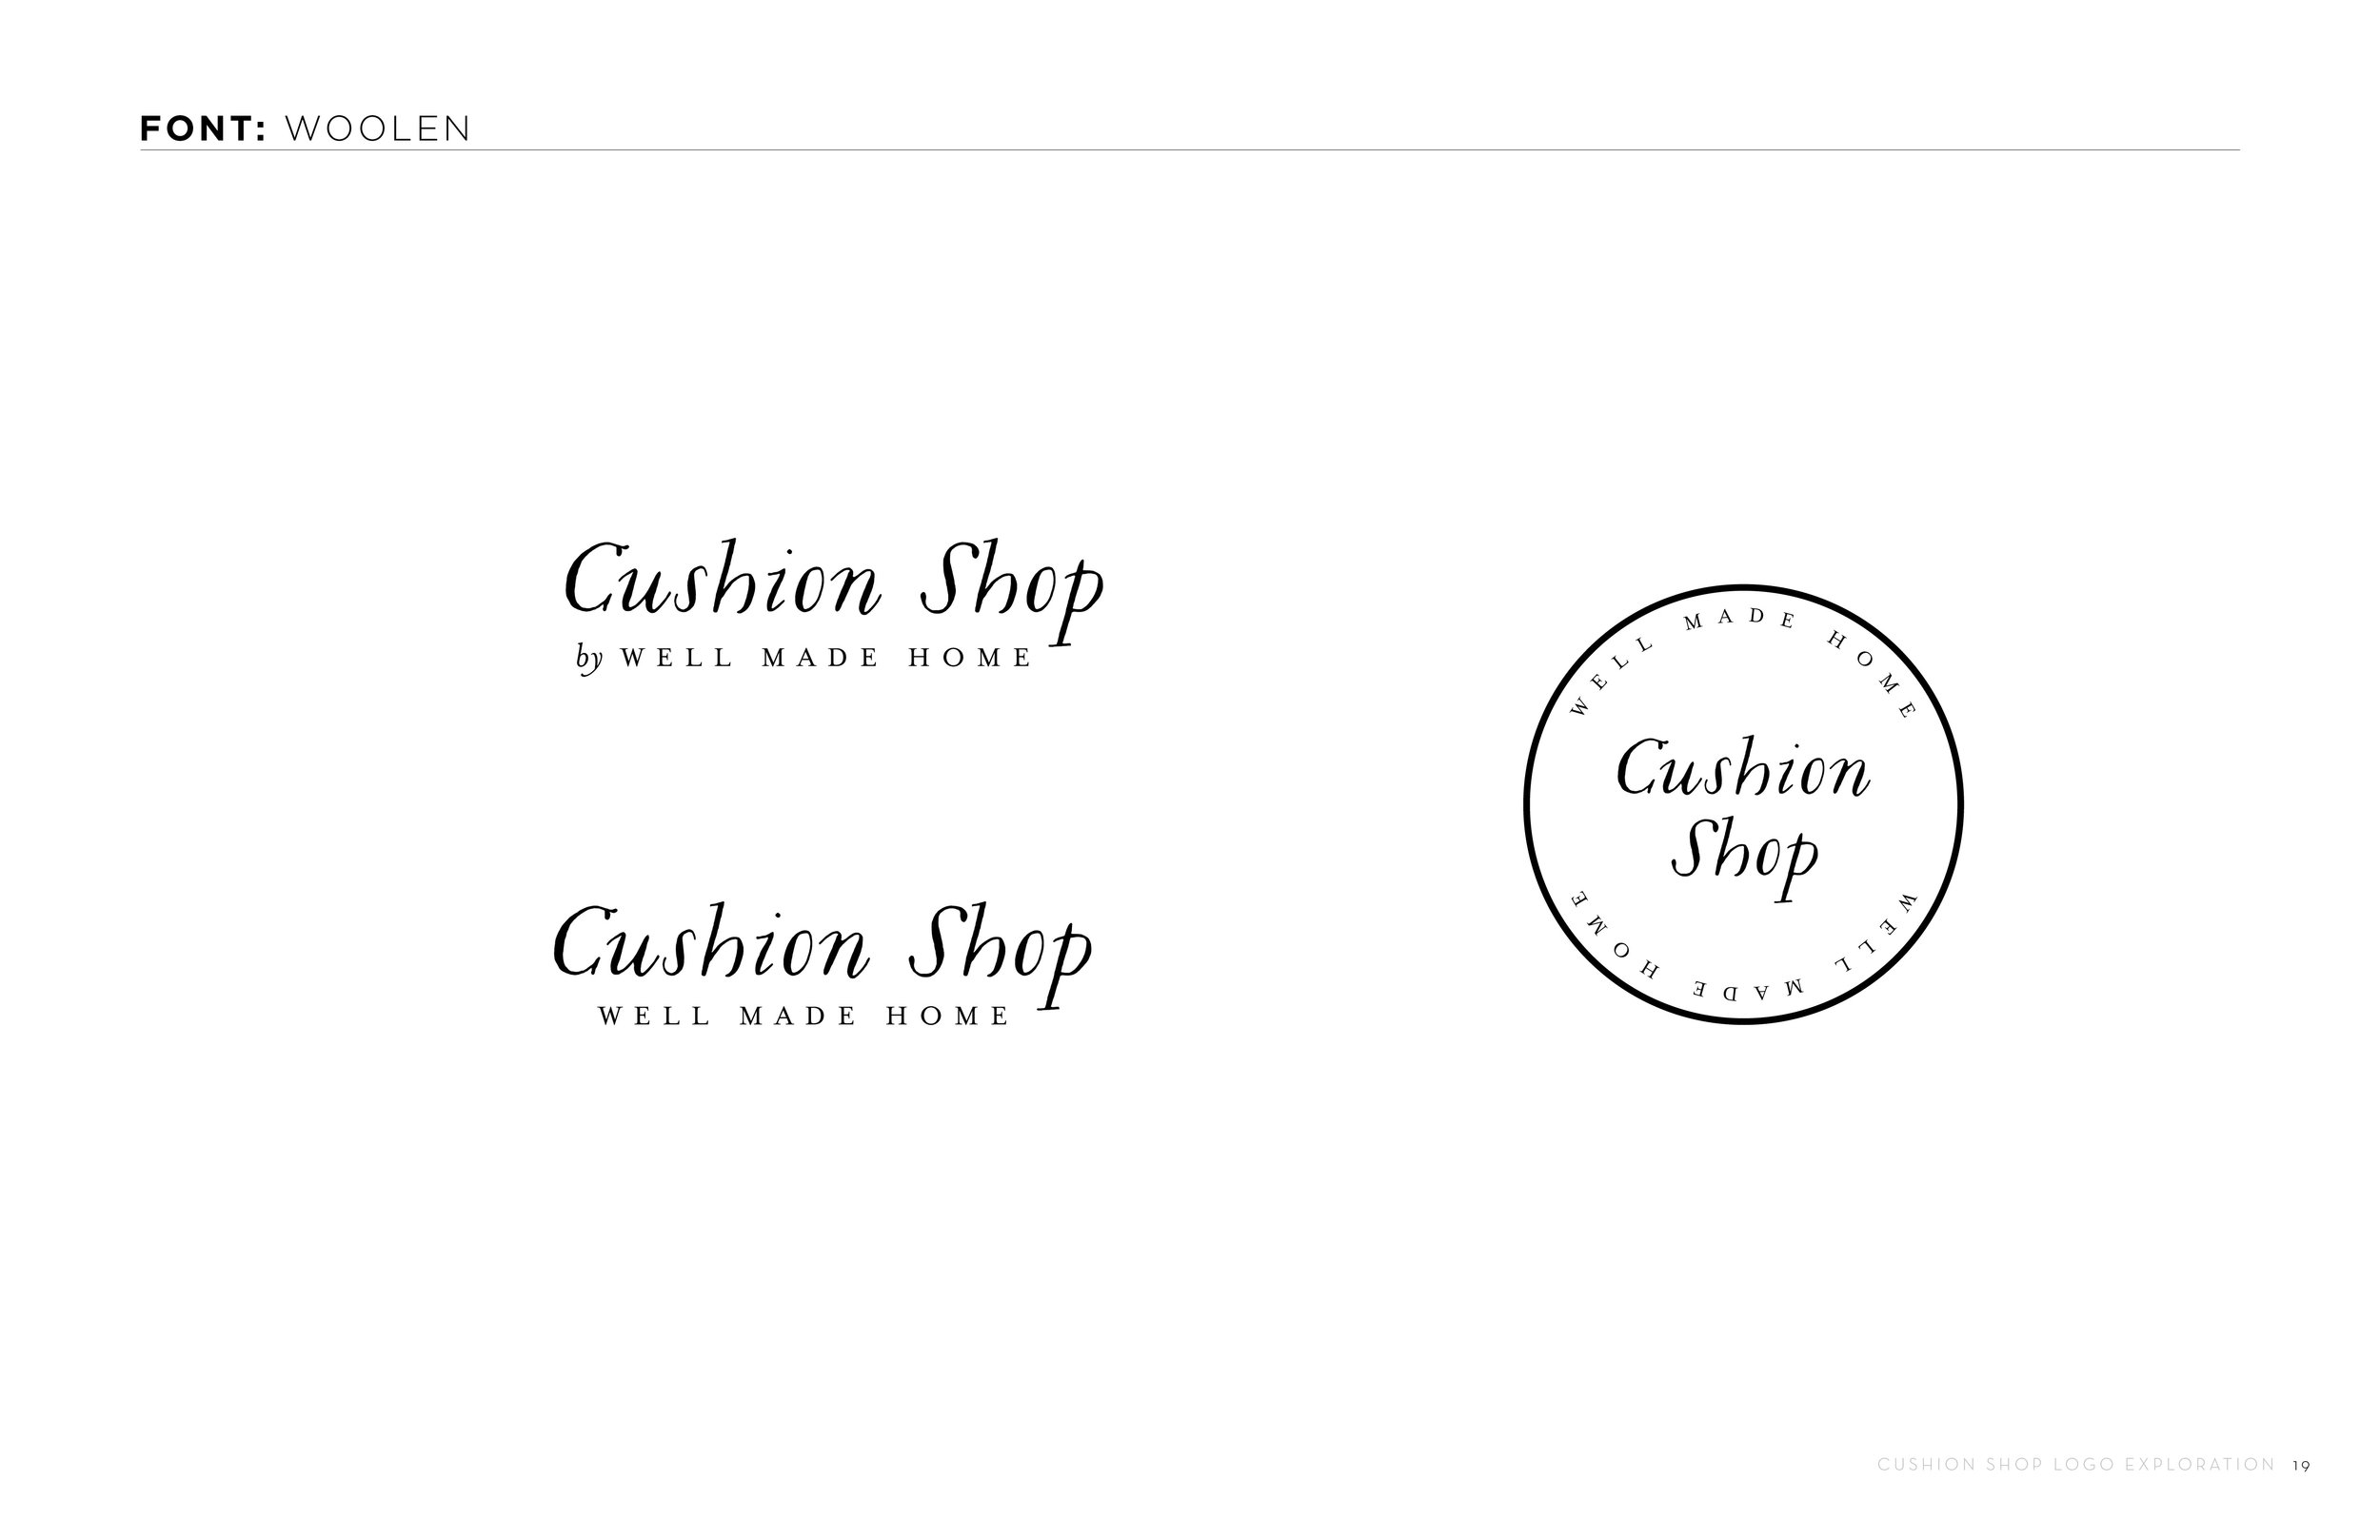 Cushion Shop_Logo Concepts_R10_19.jpg